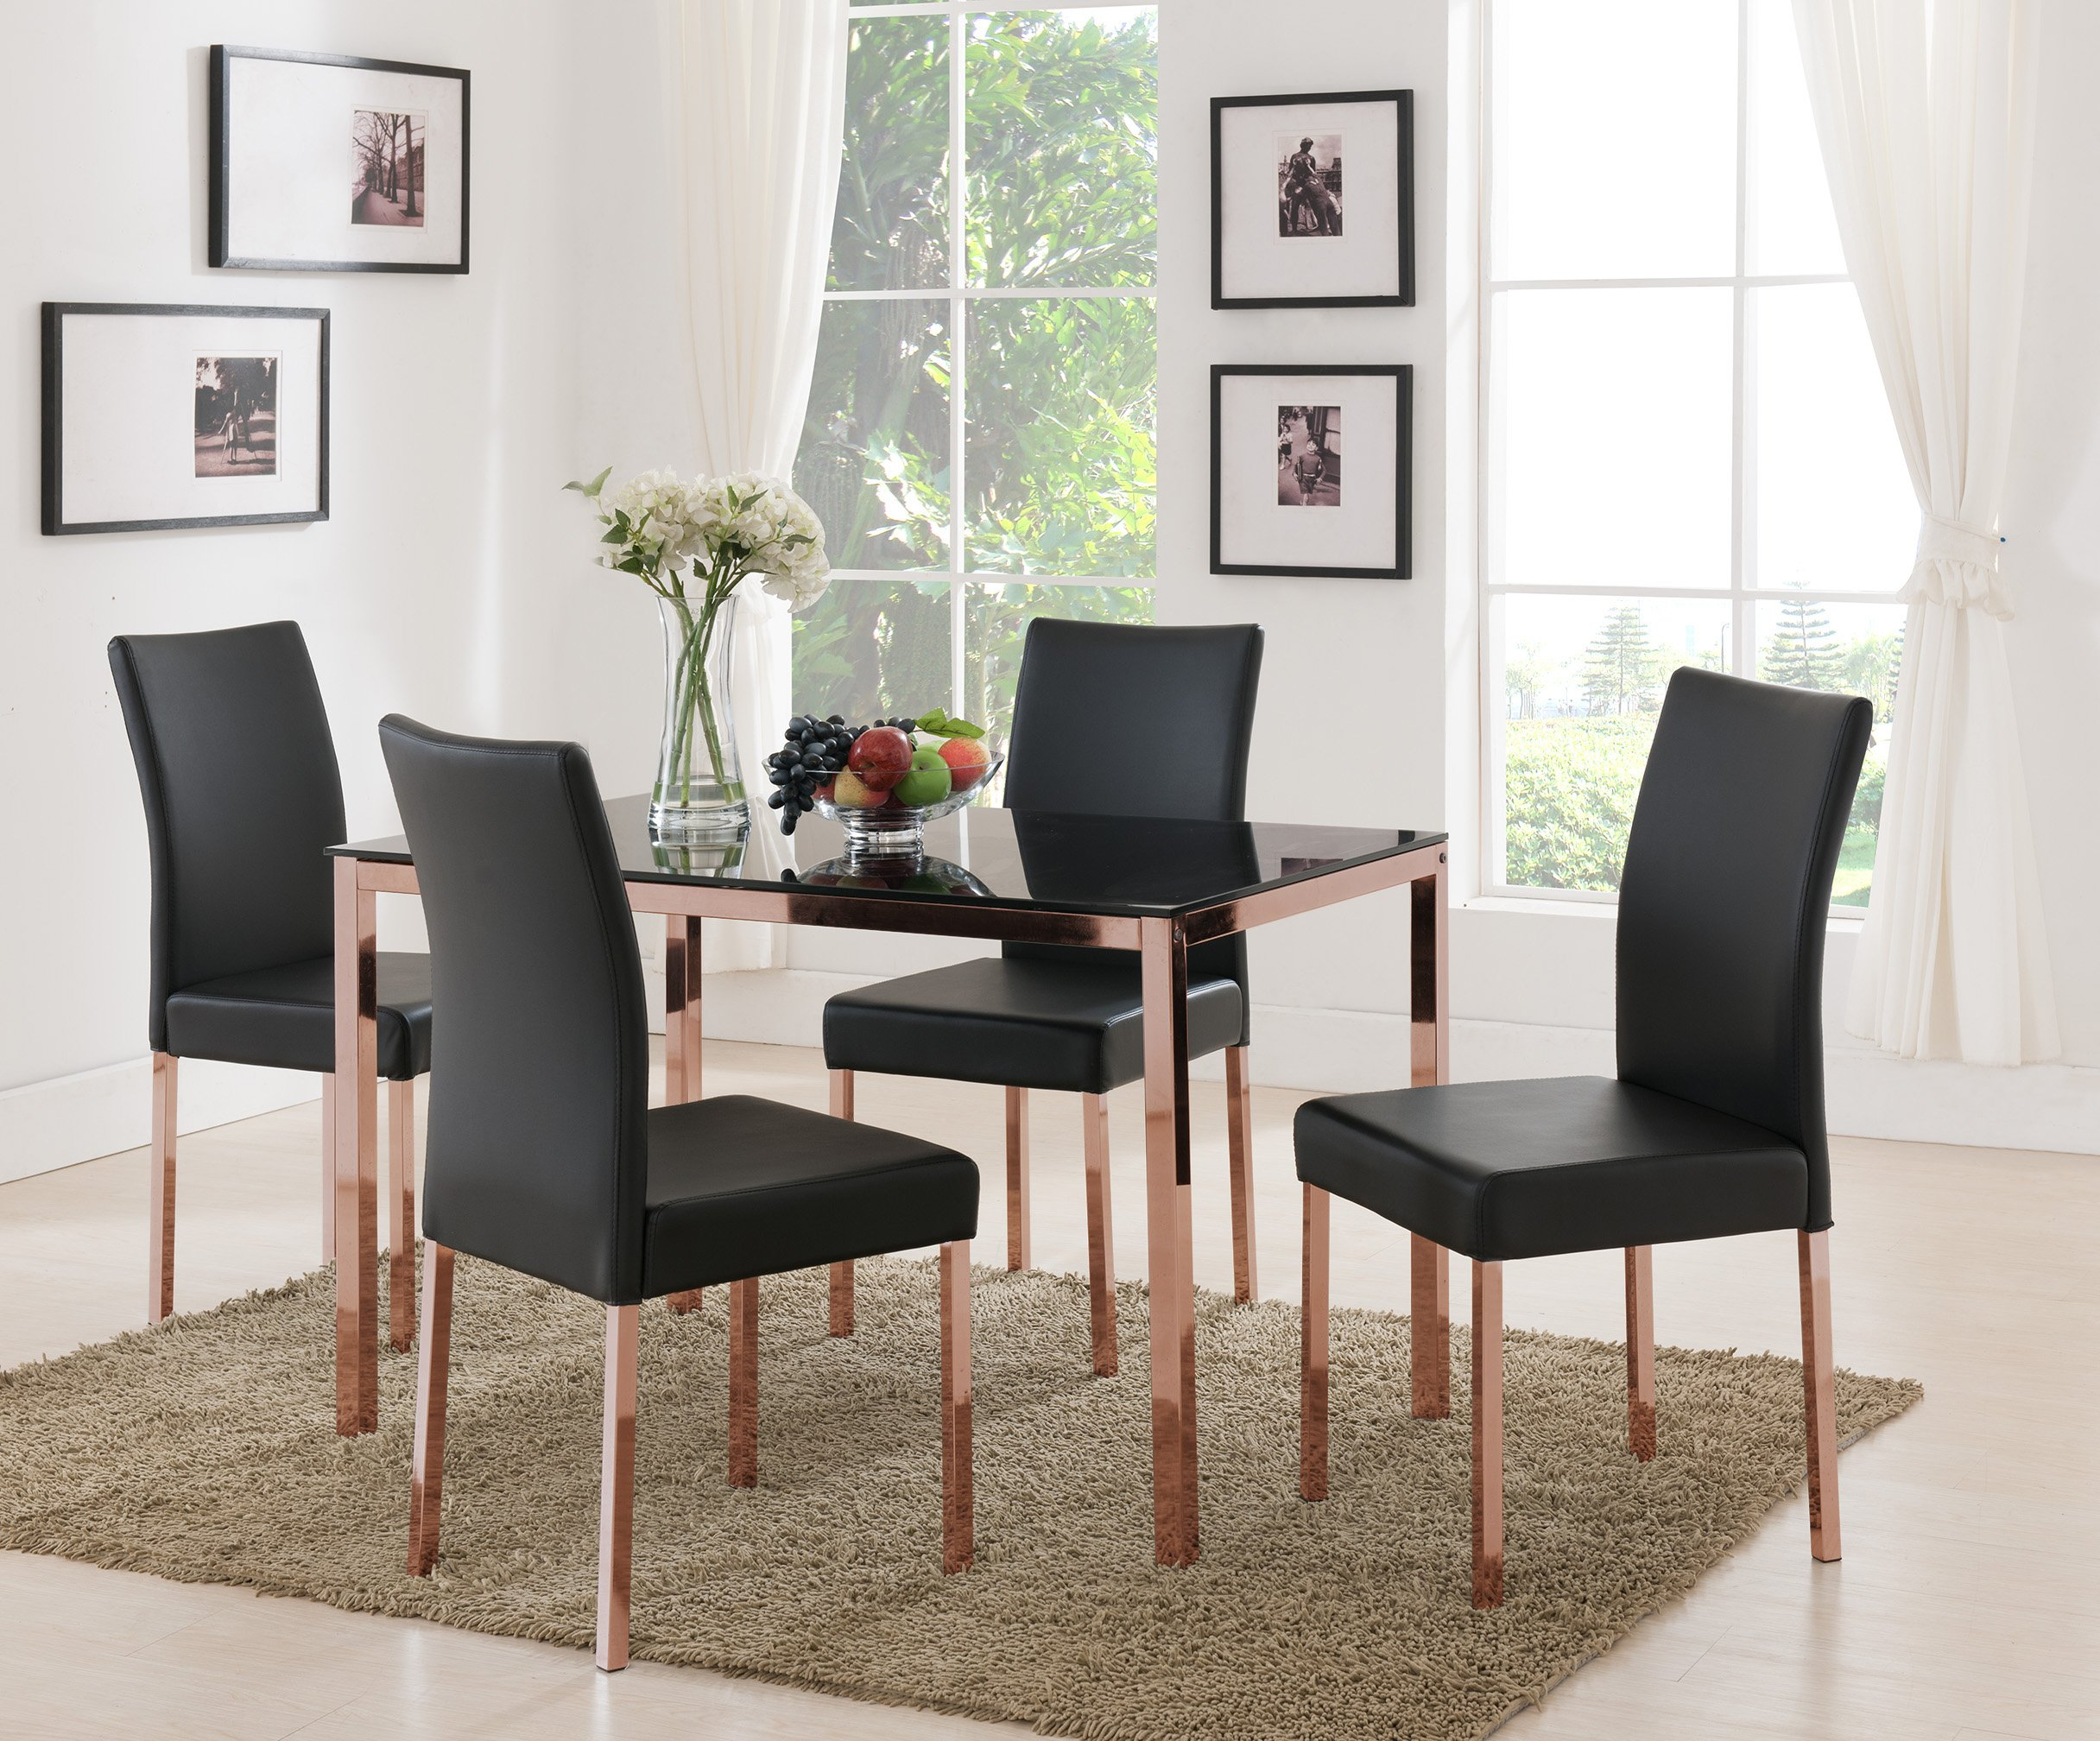 Kings Brand Rose Copper With Black Tempered Glass Kitchen Dinette Dining Table & 4 Chairs - Kings Brand Furniture Rose Copper With Black Tempered Glass Kitchen Dinette Dining Table & 4 Chairs. Modernize your dining area with this black tempered glass dining table set on a rose copper metal base. Chair is solidly constructed with an inner metal frame and black vinyl upholstery. - kitchen-dining-room-furniture, kitchen-dining-room, dining-sets - 91sv9uaazIL -